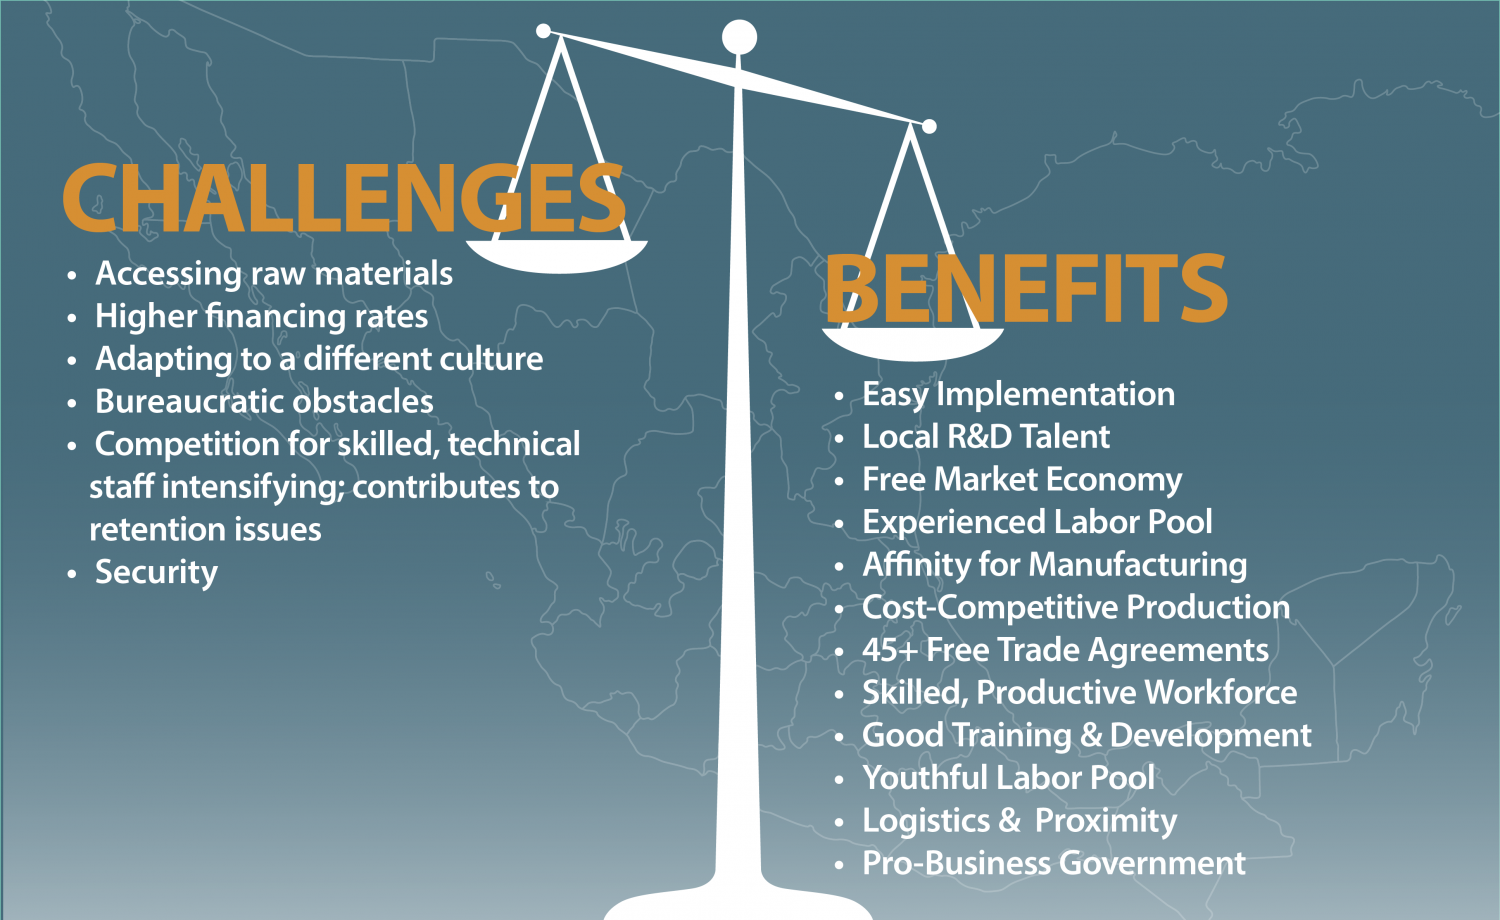 Mexico manufacturing benefits